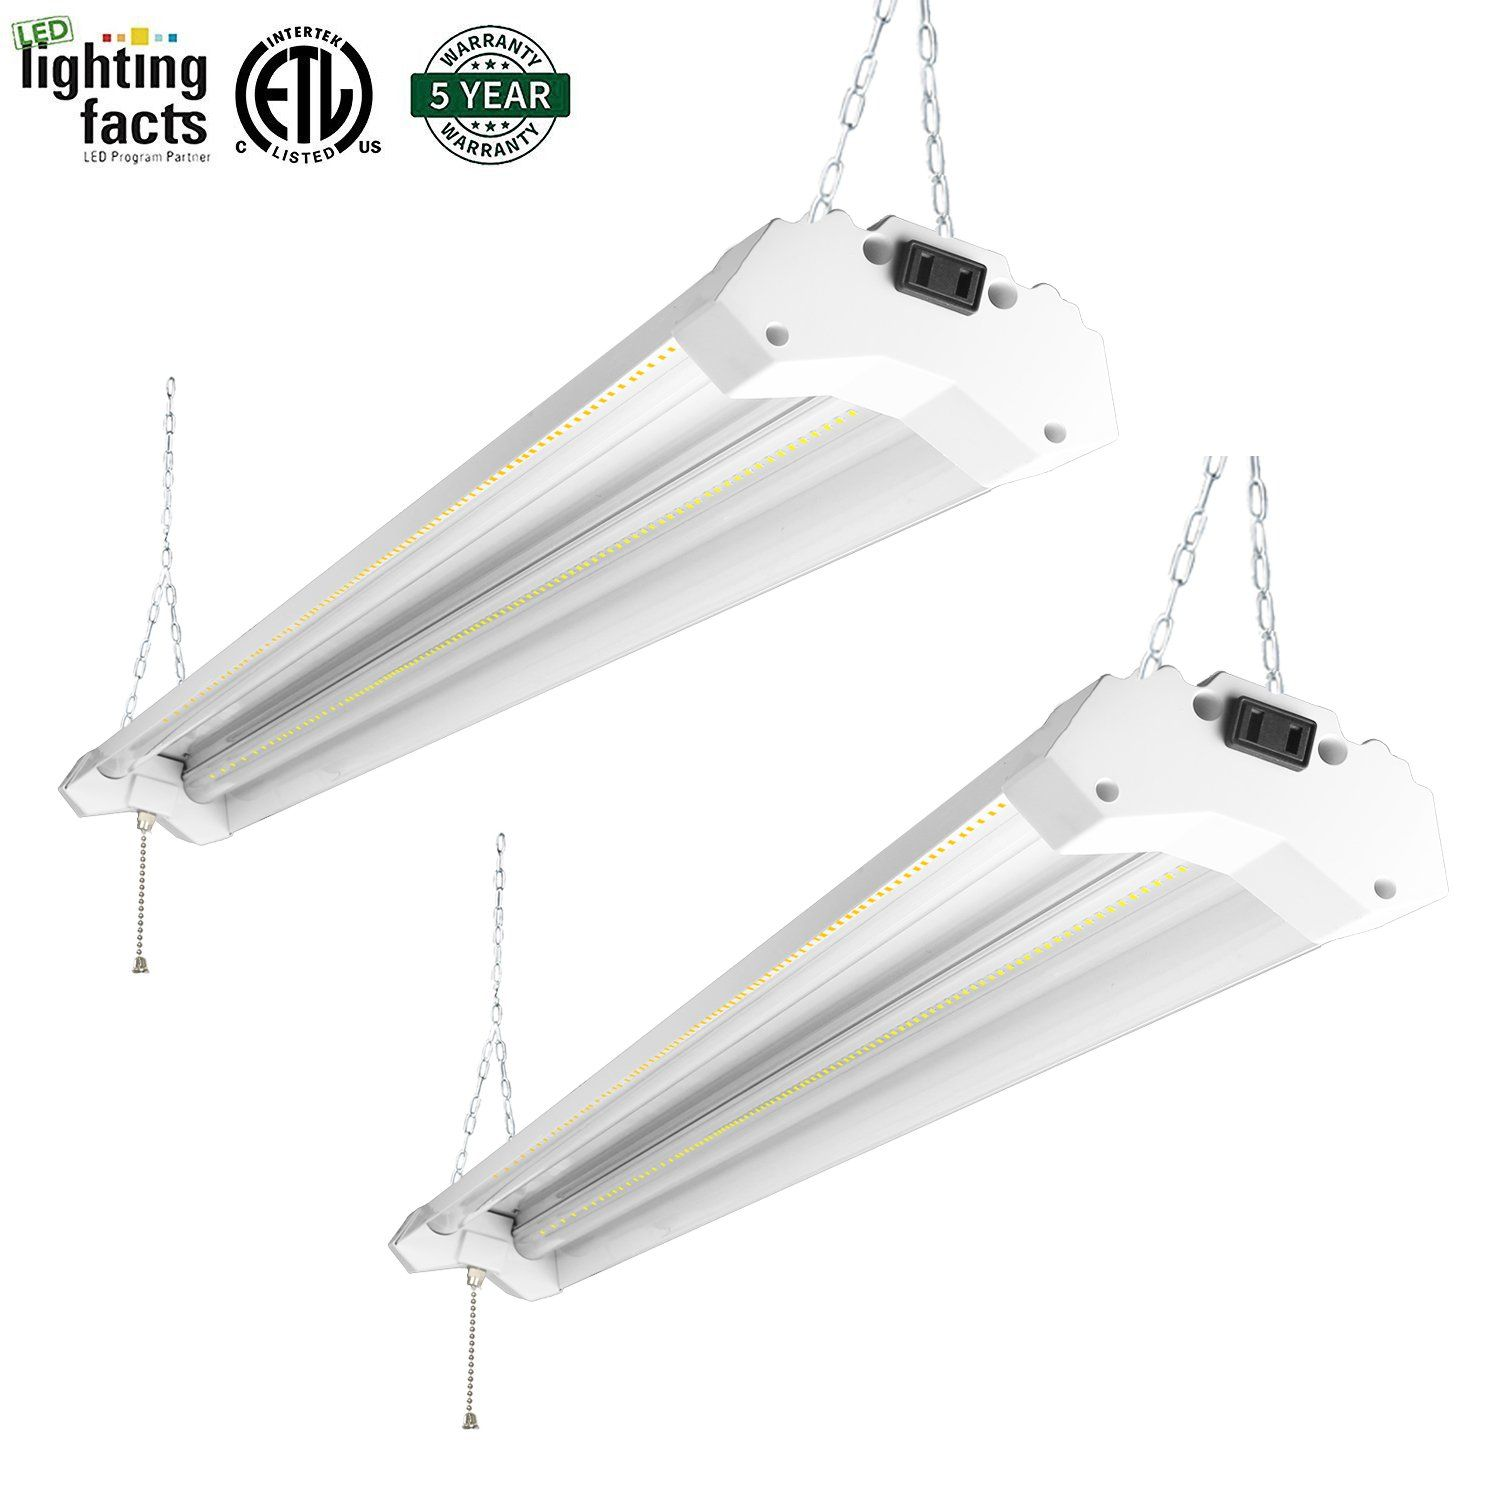 weather performance affect in lowes of shop light lights cold ft garage led fixture full fixtures does fluorescent size bulbs how